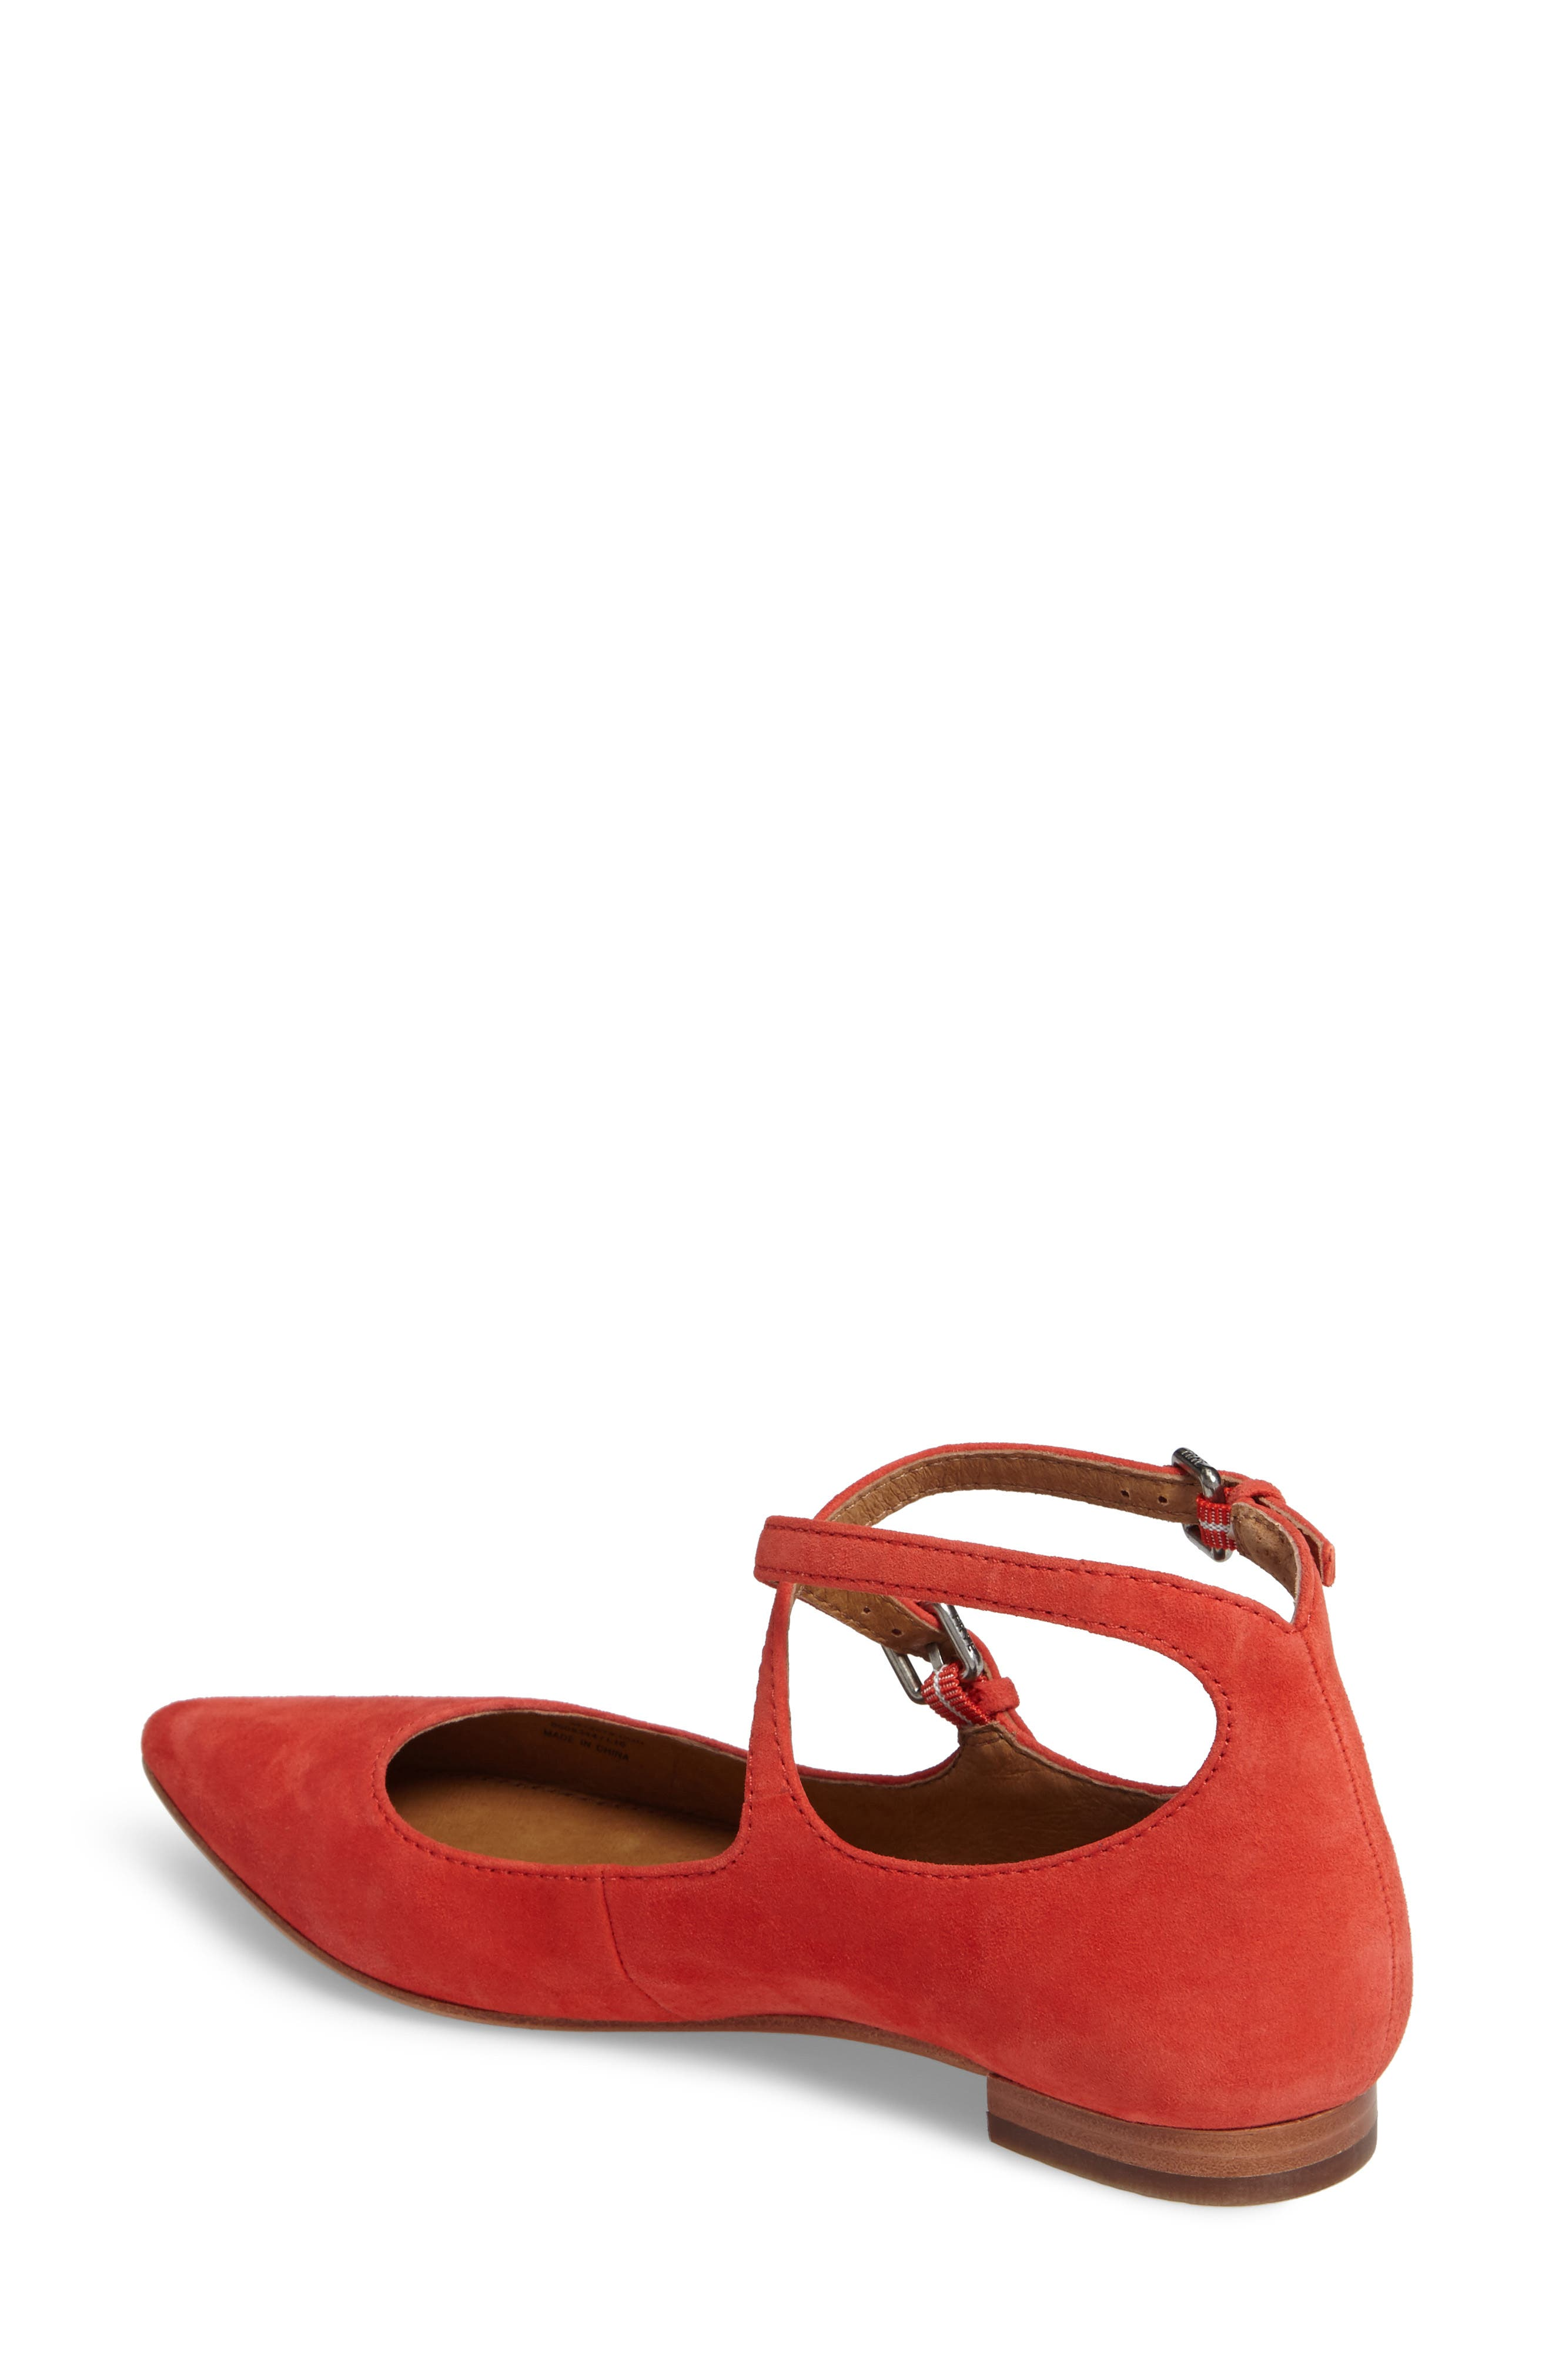 Sienna Cross Ballet Flat,                             Alternate thumbnail 6, color,